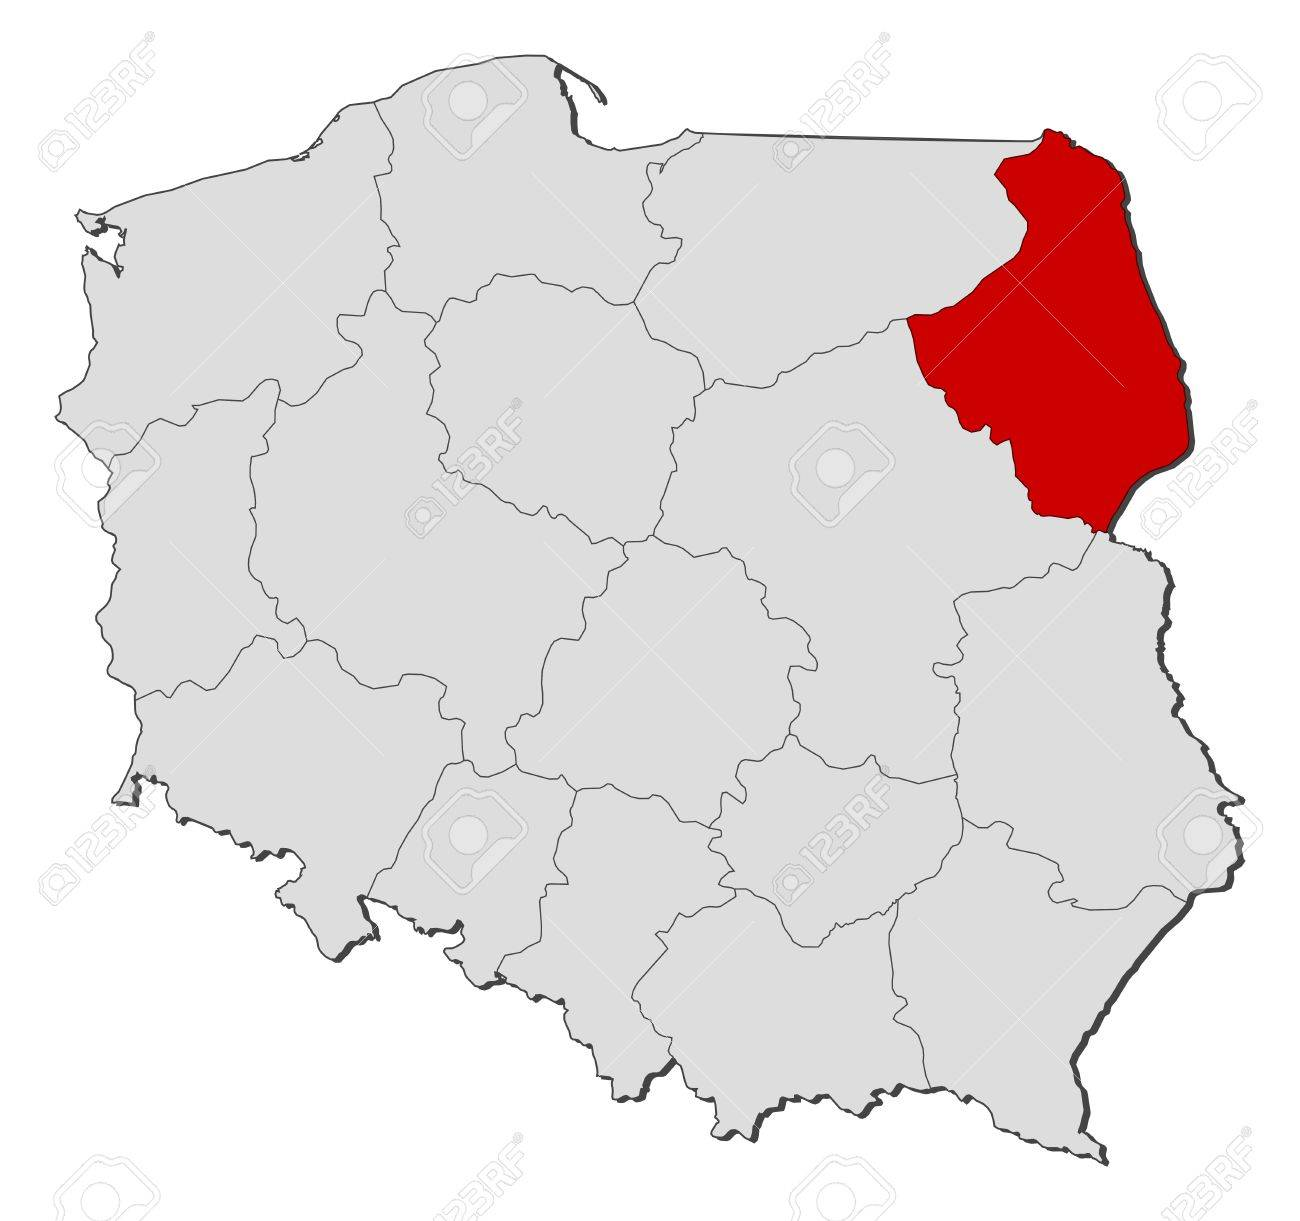 Political Map Of Poland With The Several Provinces Voivodships - Poland political map